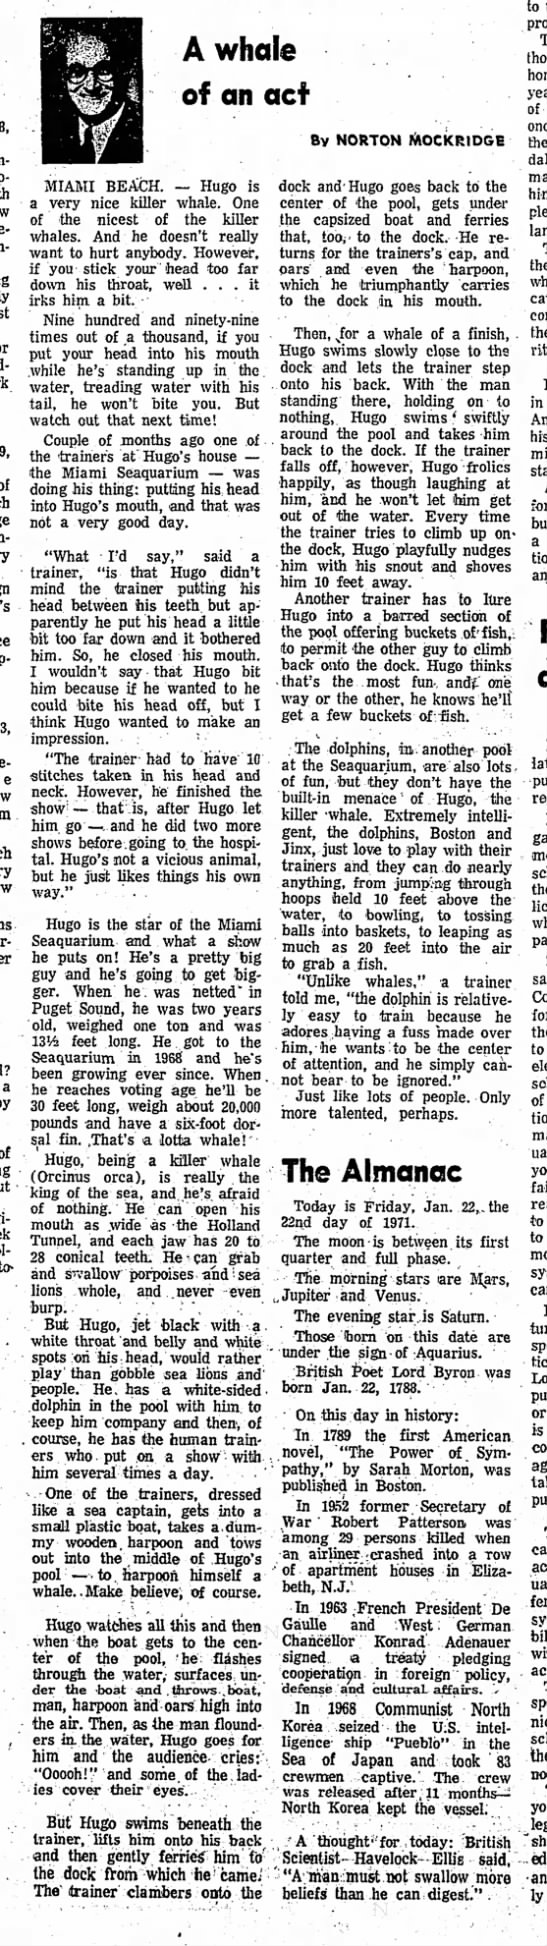 Redlands Daily Facts (Redlands, California) January 22, 1971